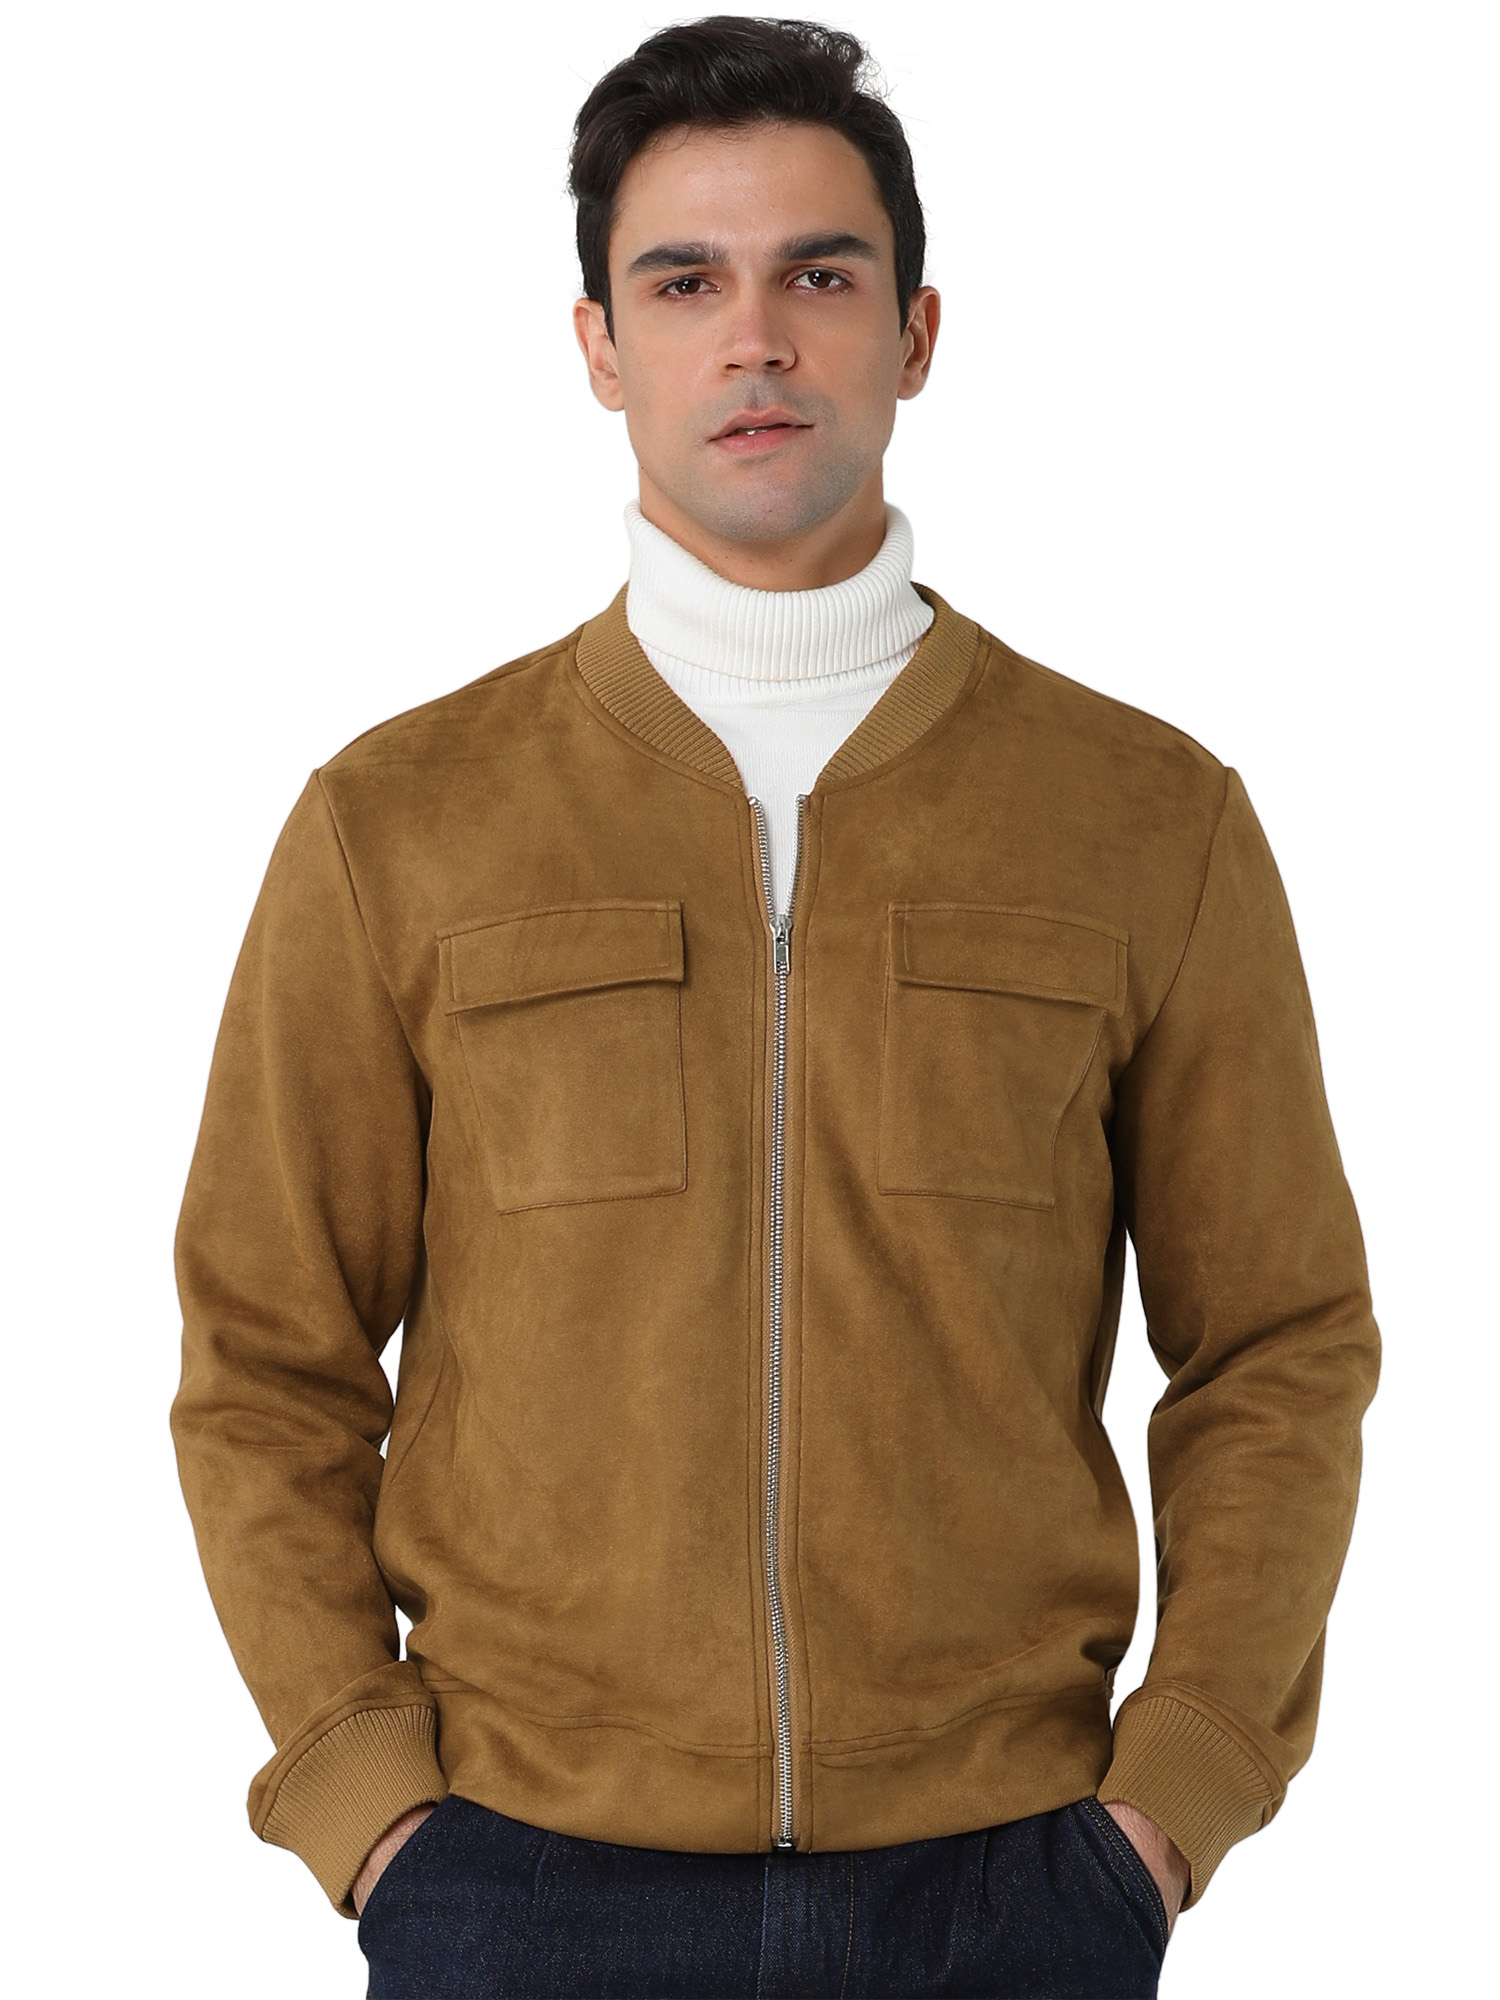 Men's Suede Jacket Zip Up Pockets Faux Baseball Bomber Jackets Brown L